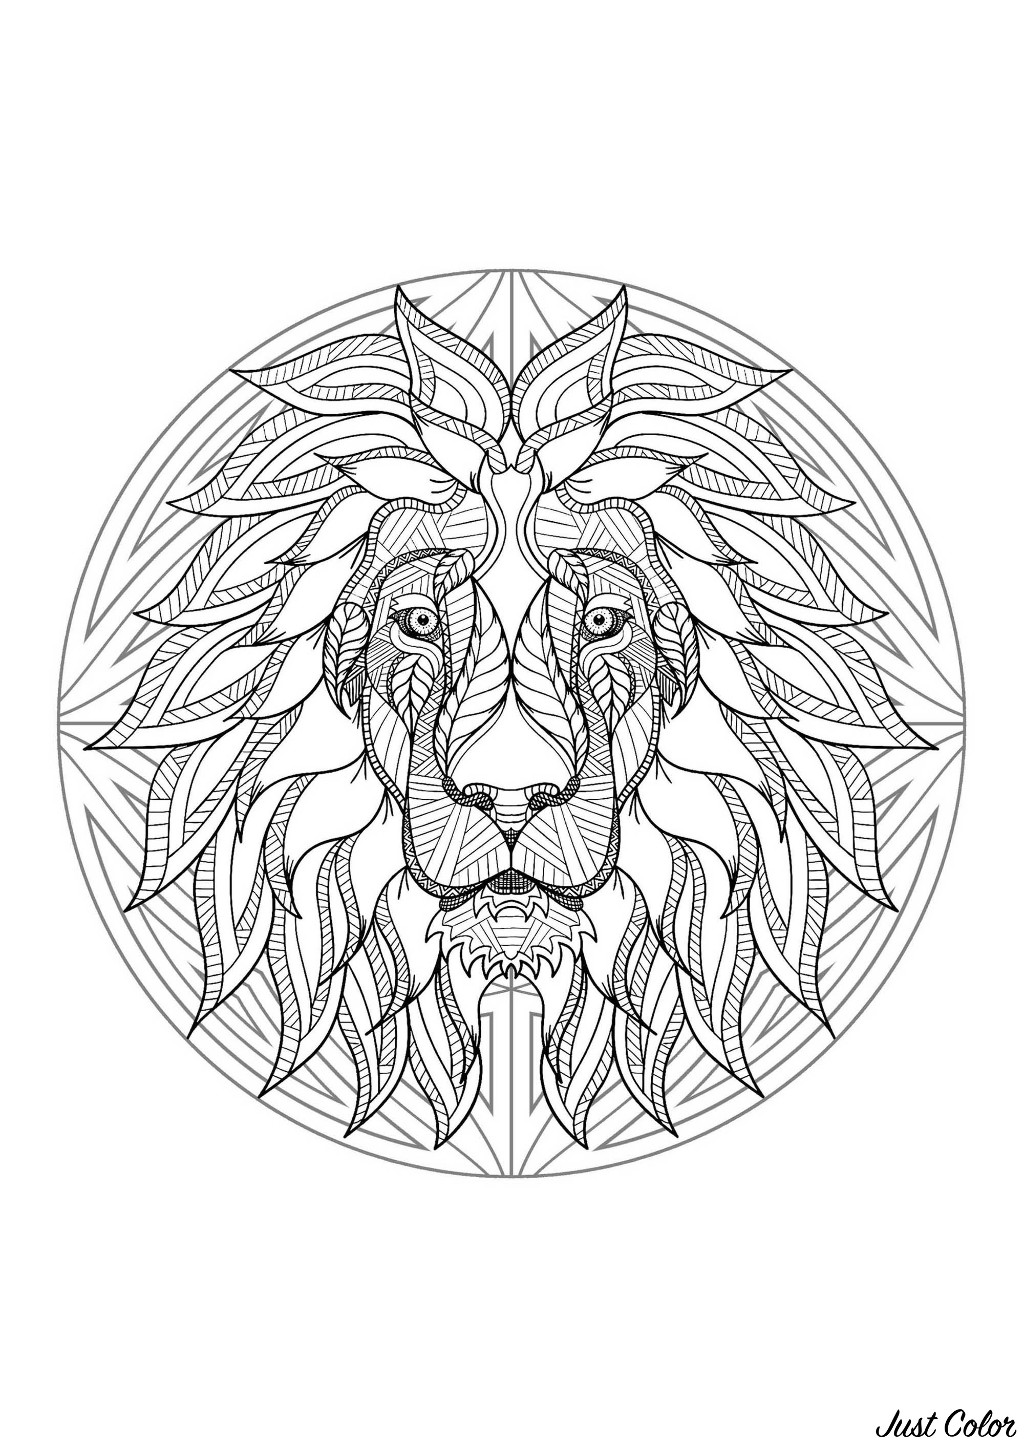 A beautiful Mandala coloring page, of great quality and originality. It's up to you to choose the most appropriate colors to color this lion. You must clear your mind and allow yourself to forget all your worries and responsibilities.